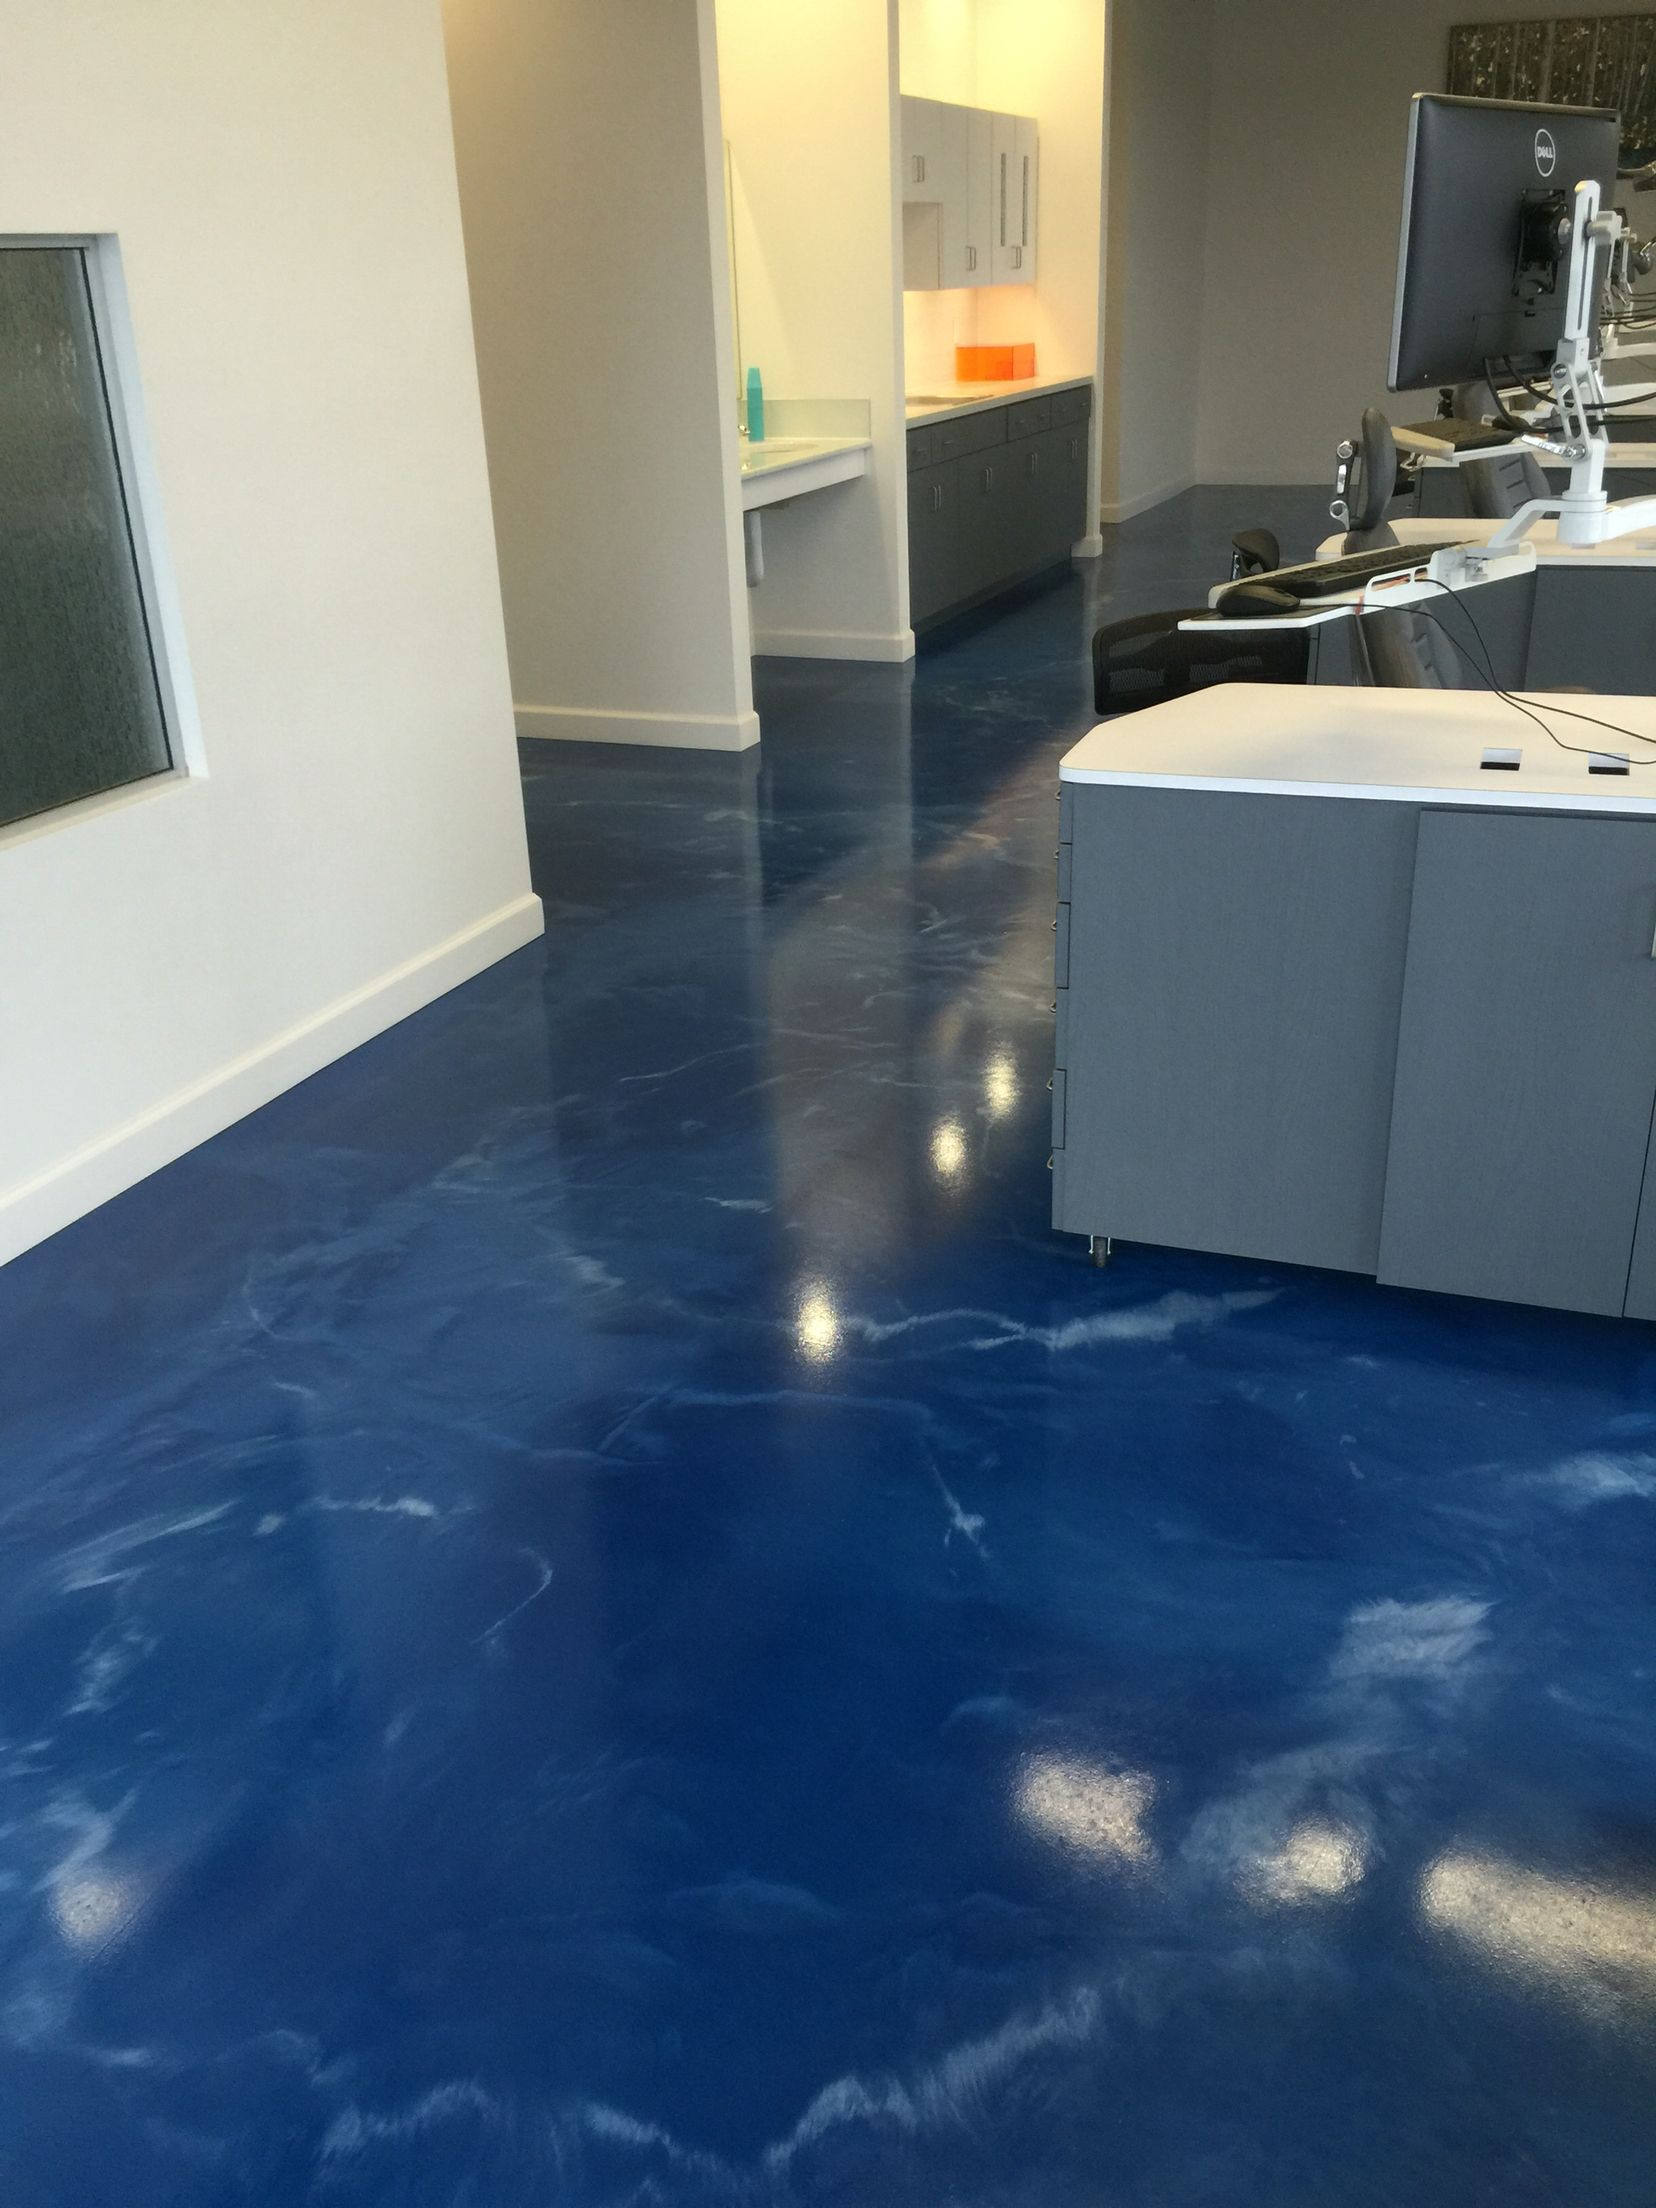 Metallic Epoxy Metallic Epoxy Floor Installed For A Dental Office By